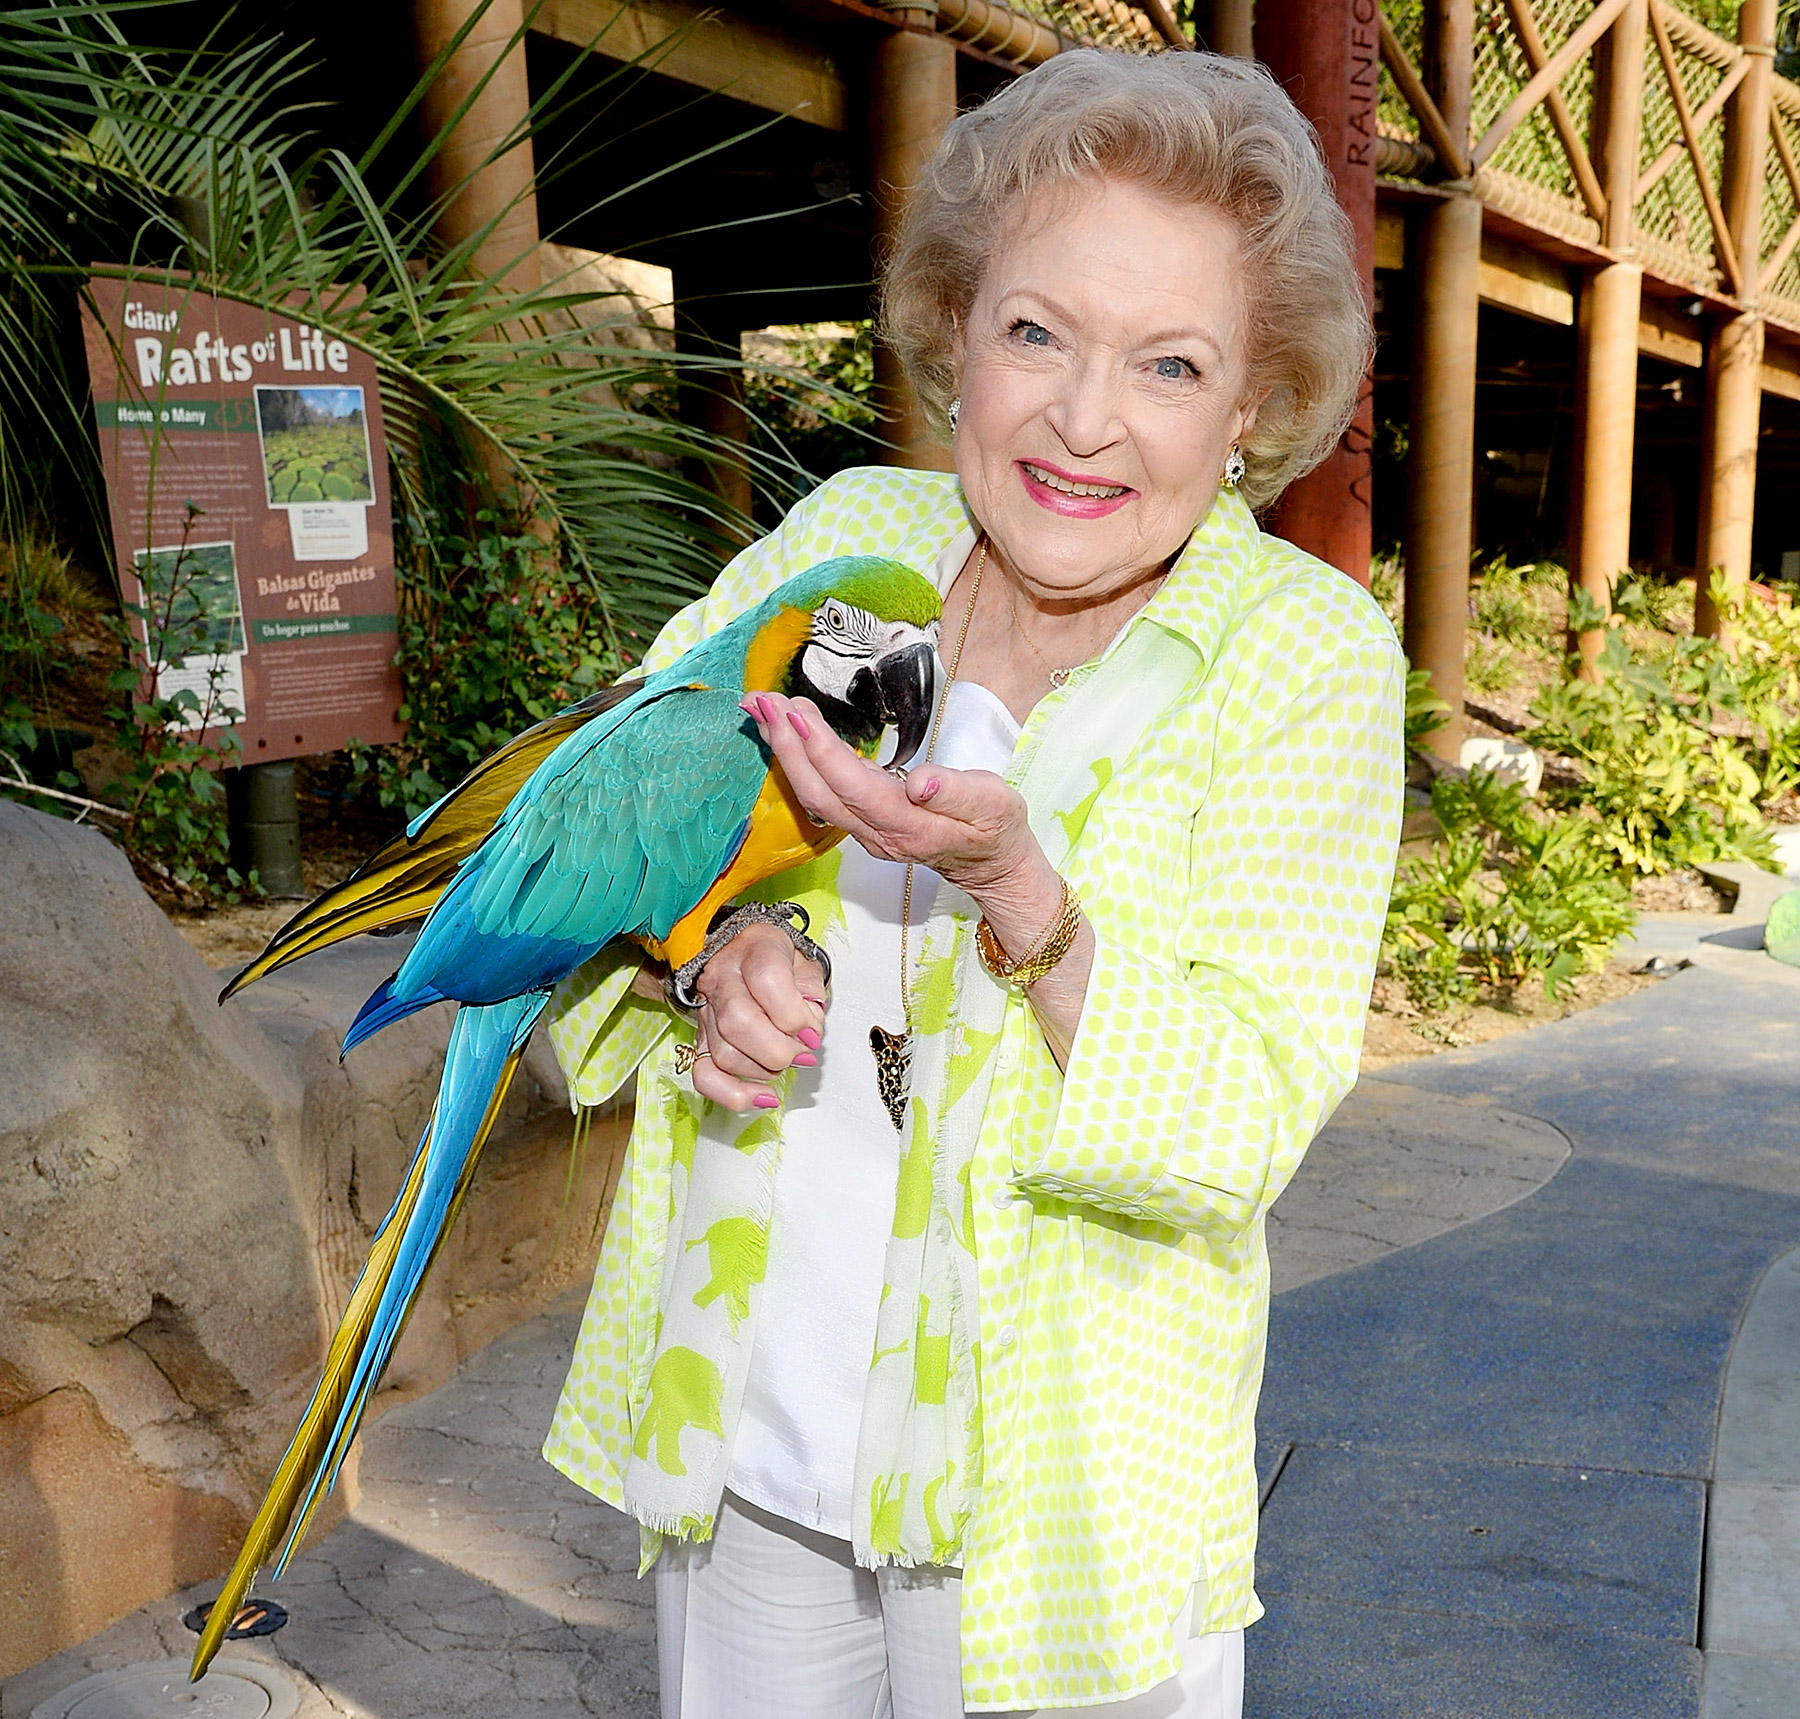 The longtime animal rights activist has been on the Board of Directors at the Los Angeles Zoo since 1974. She also wrote the books Betty White's Pet-Love: How Pets Take Care of Us and Betty & Friends: My Life at the Zoo.